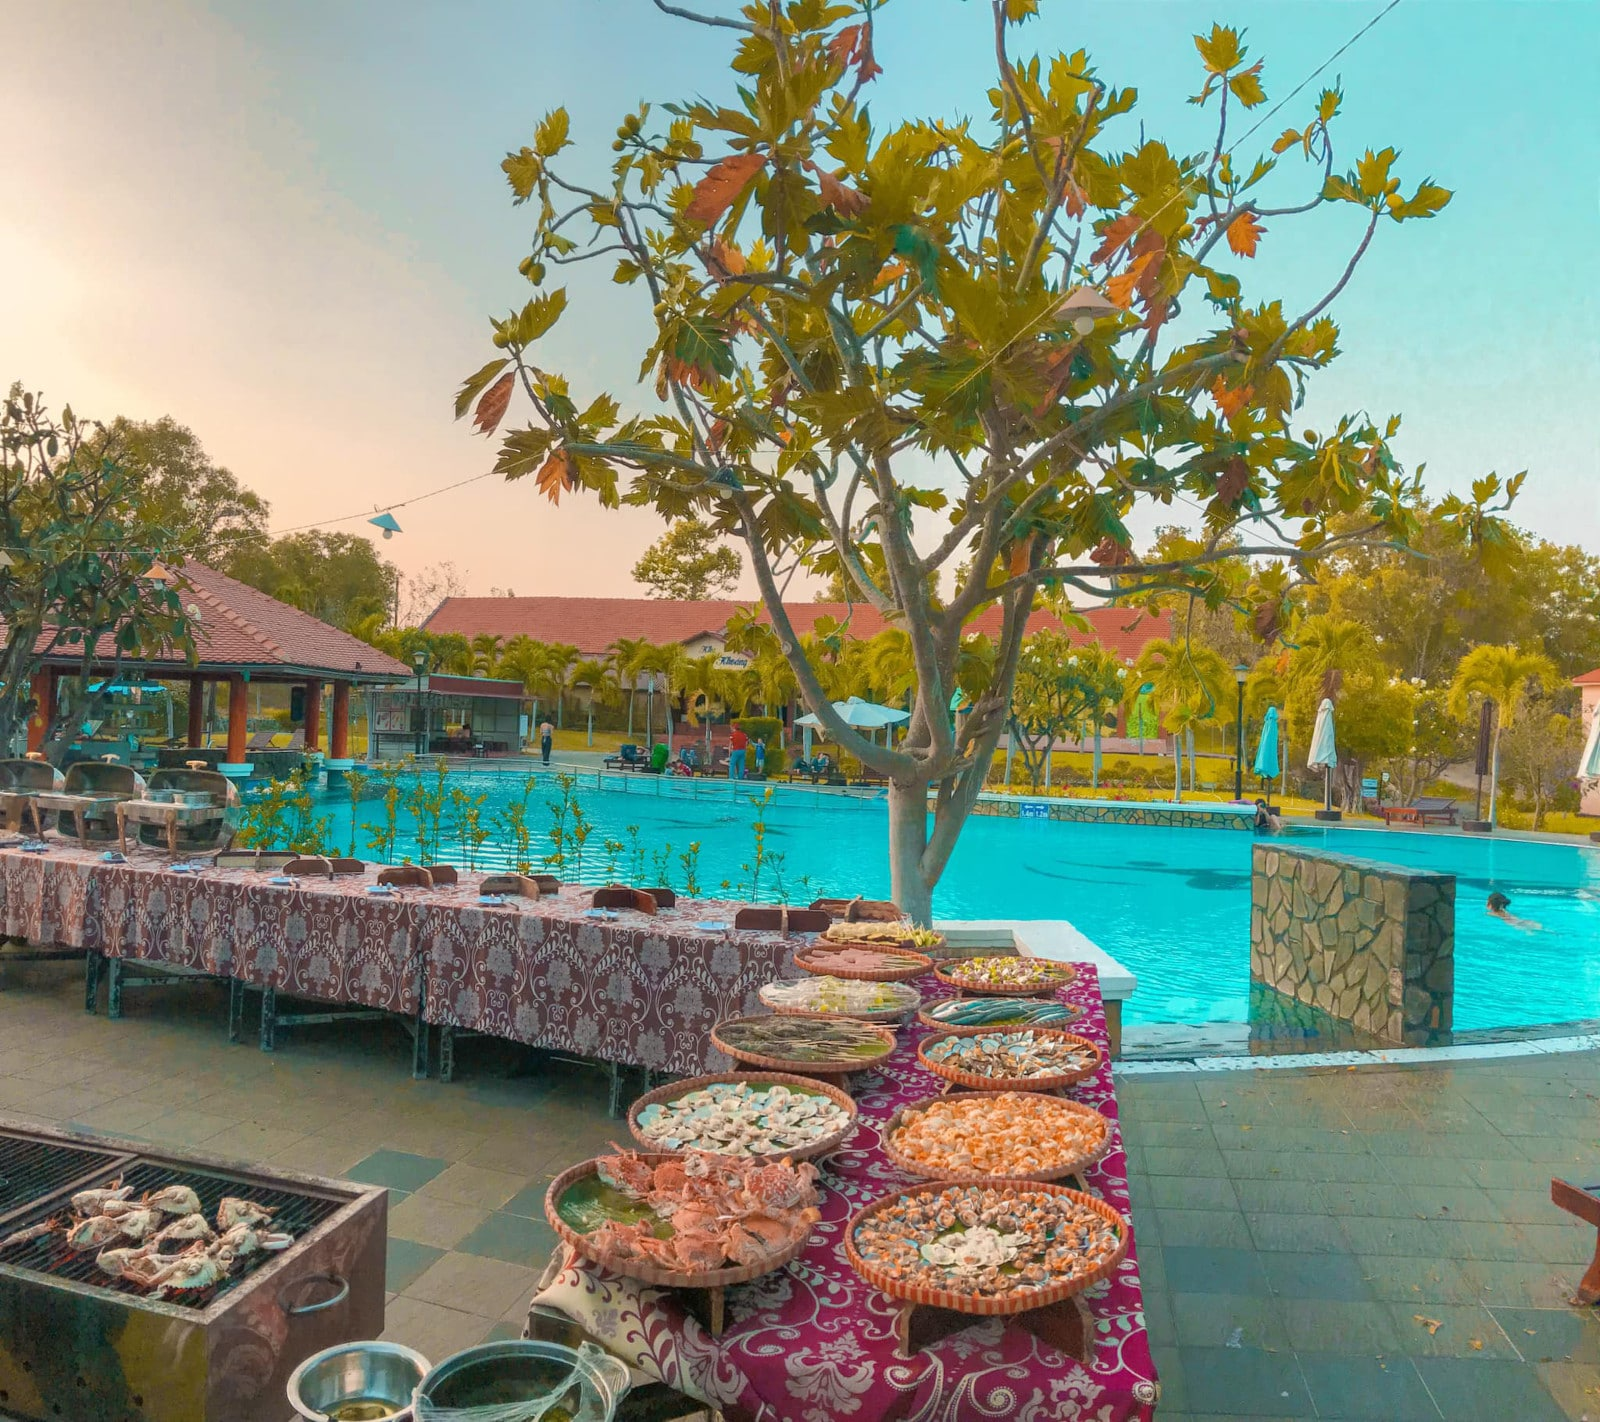 Image of a poolside buffet at the Mui Ne Hot Spring Center in Bin Thuan, Vietnam